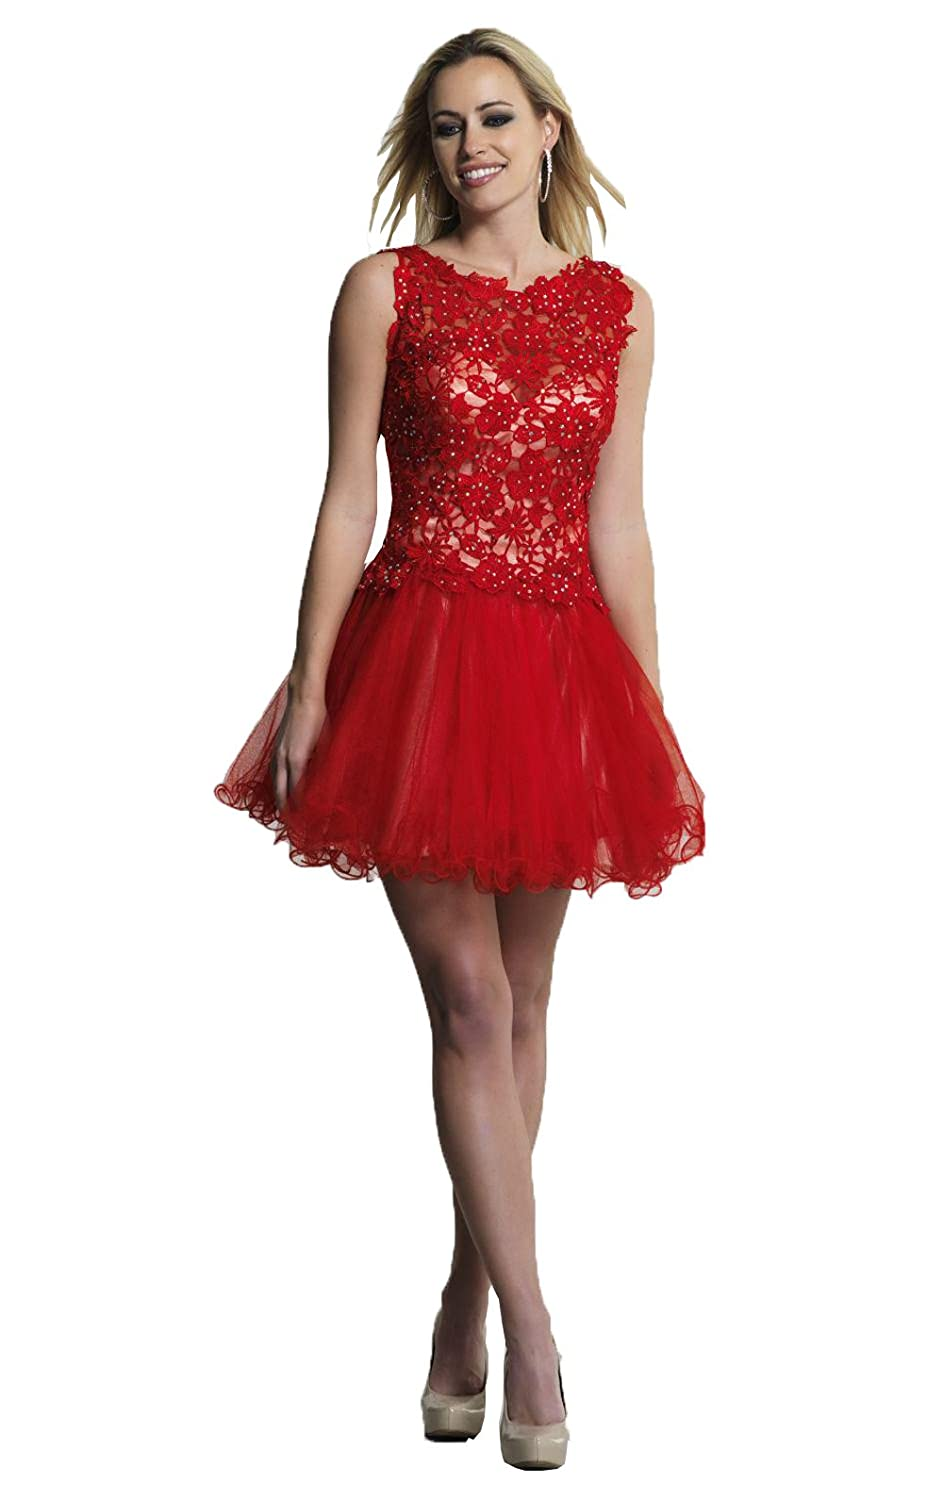 Felaladress Red Charming Lace Appliques Sparkly Backless Homecoming Dresses